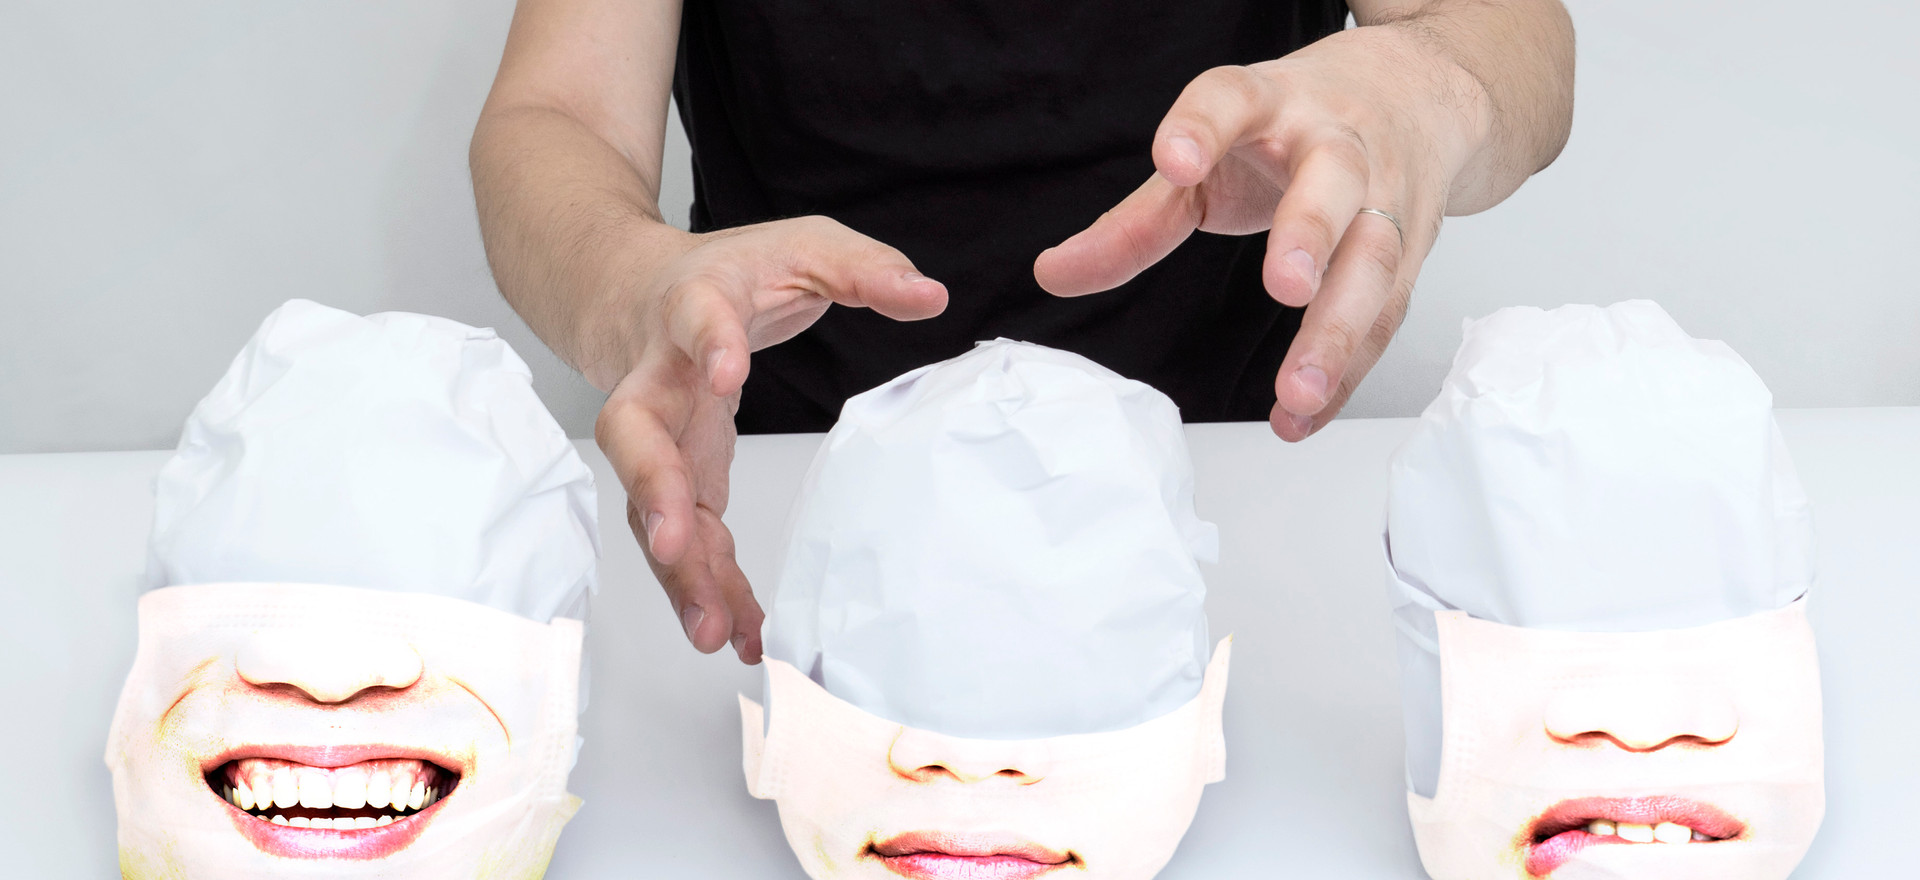 COVID-19 SCENERY -face masks(Limited Edition of 5)